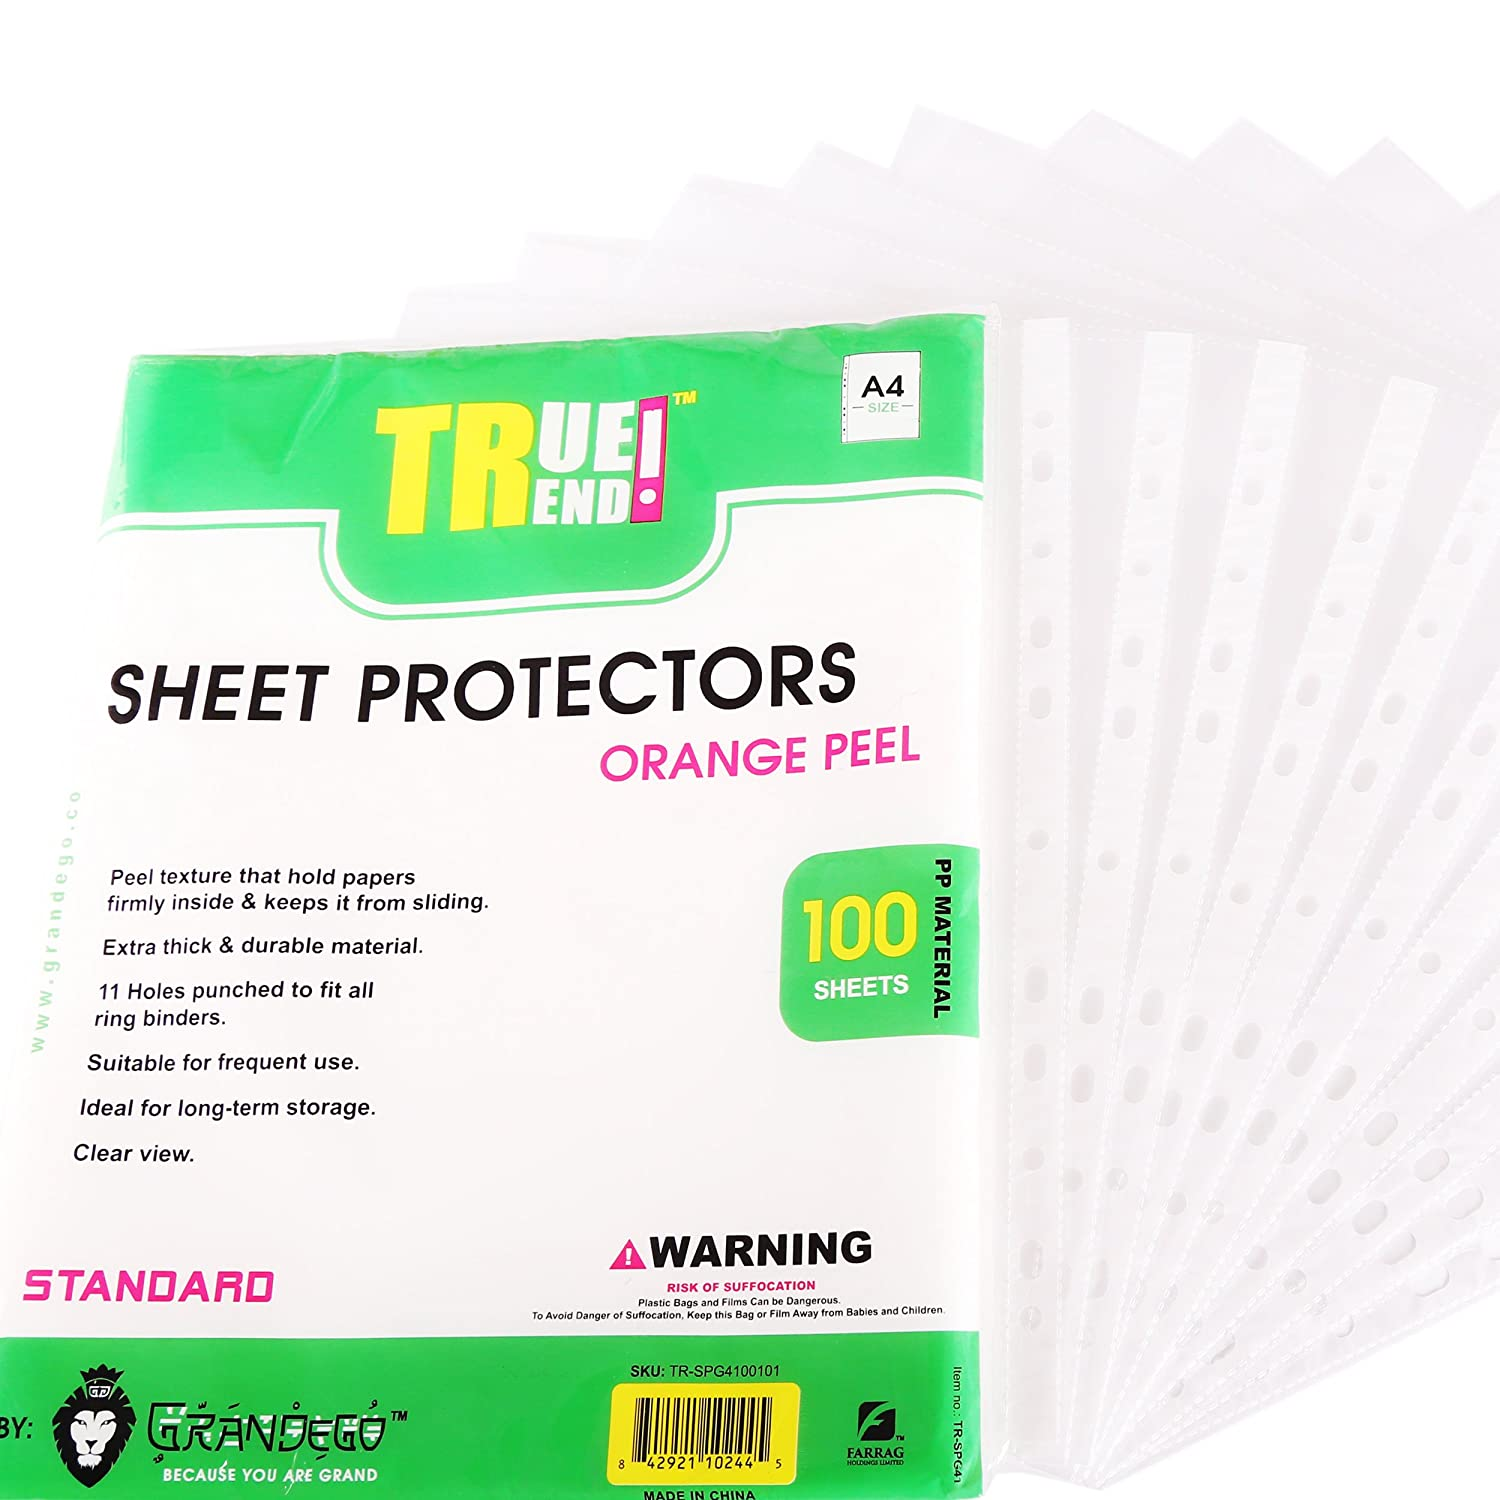 TRUETREND Clear Heavyweight Sheet Protectors | Bulk Box of 50 Sheets - 11 Reinforced Binder Ready Holes - Great for Document Storage, Reports and Presentations - Crystal Clear + A4 Size GRANDEGO